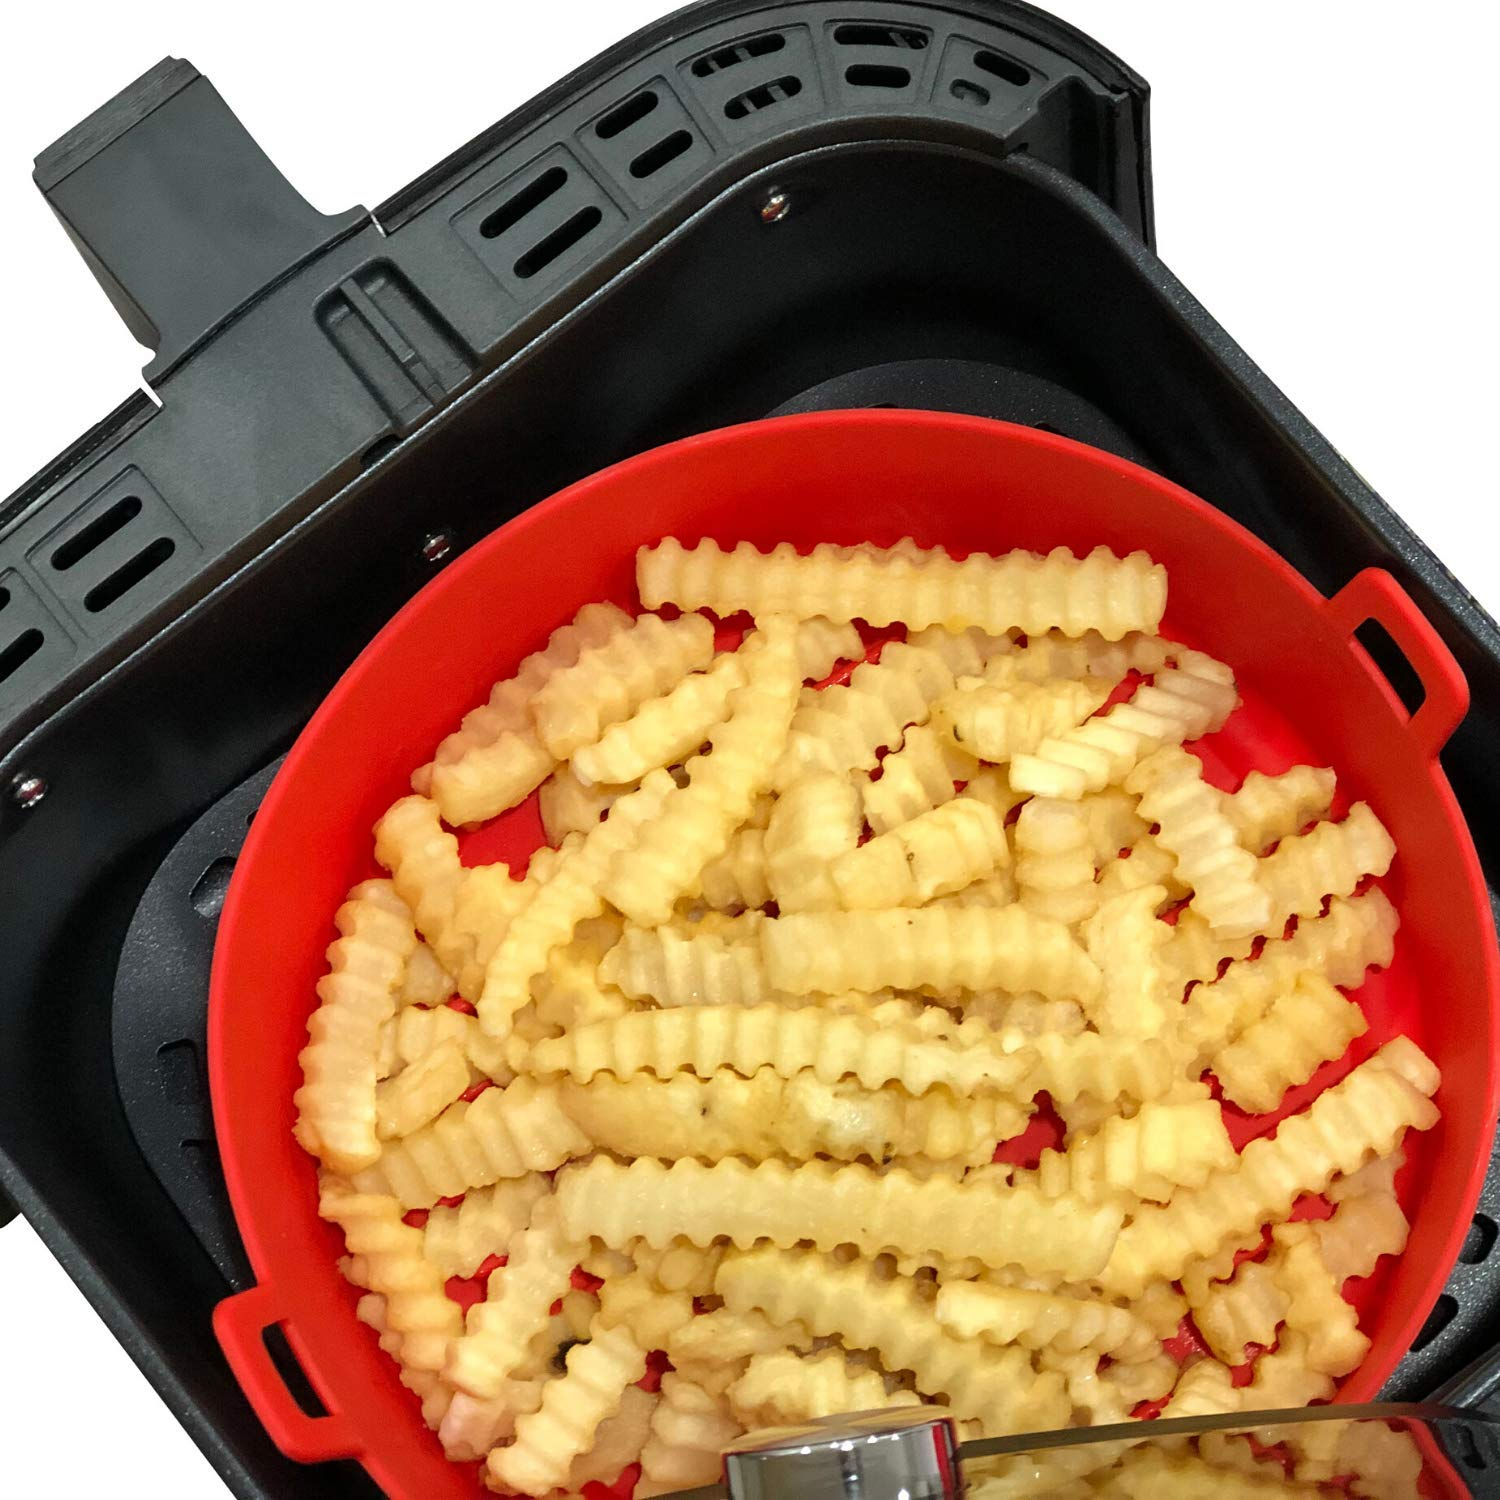 air fryer oven accessories